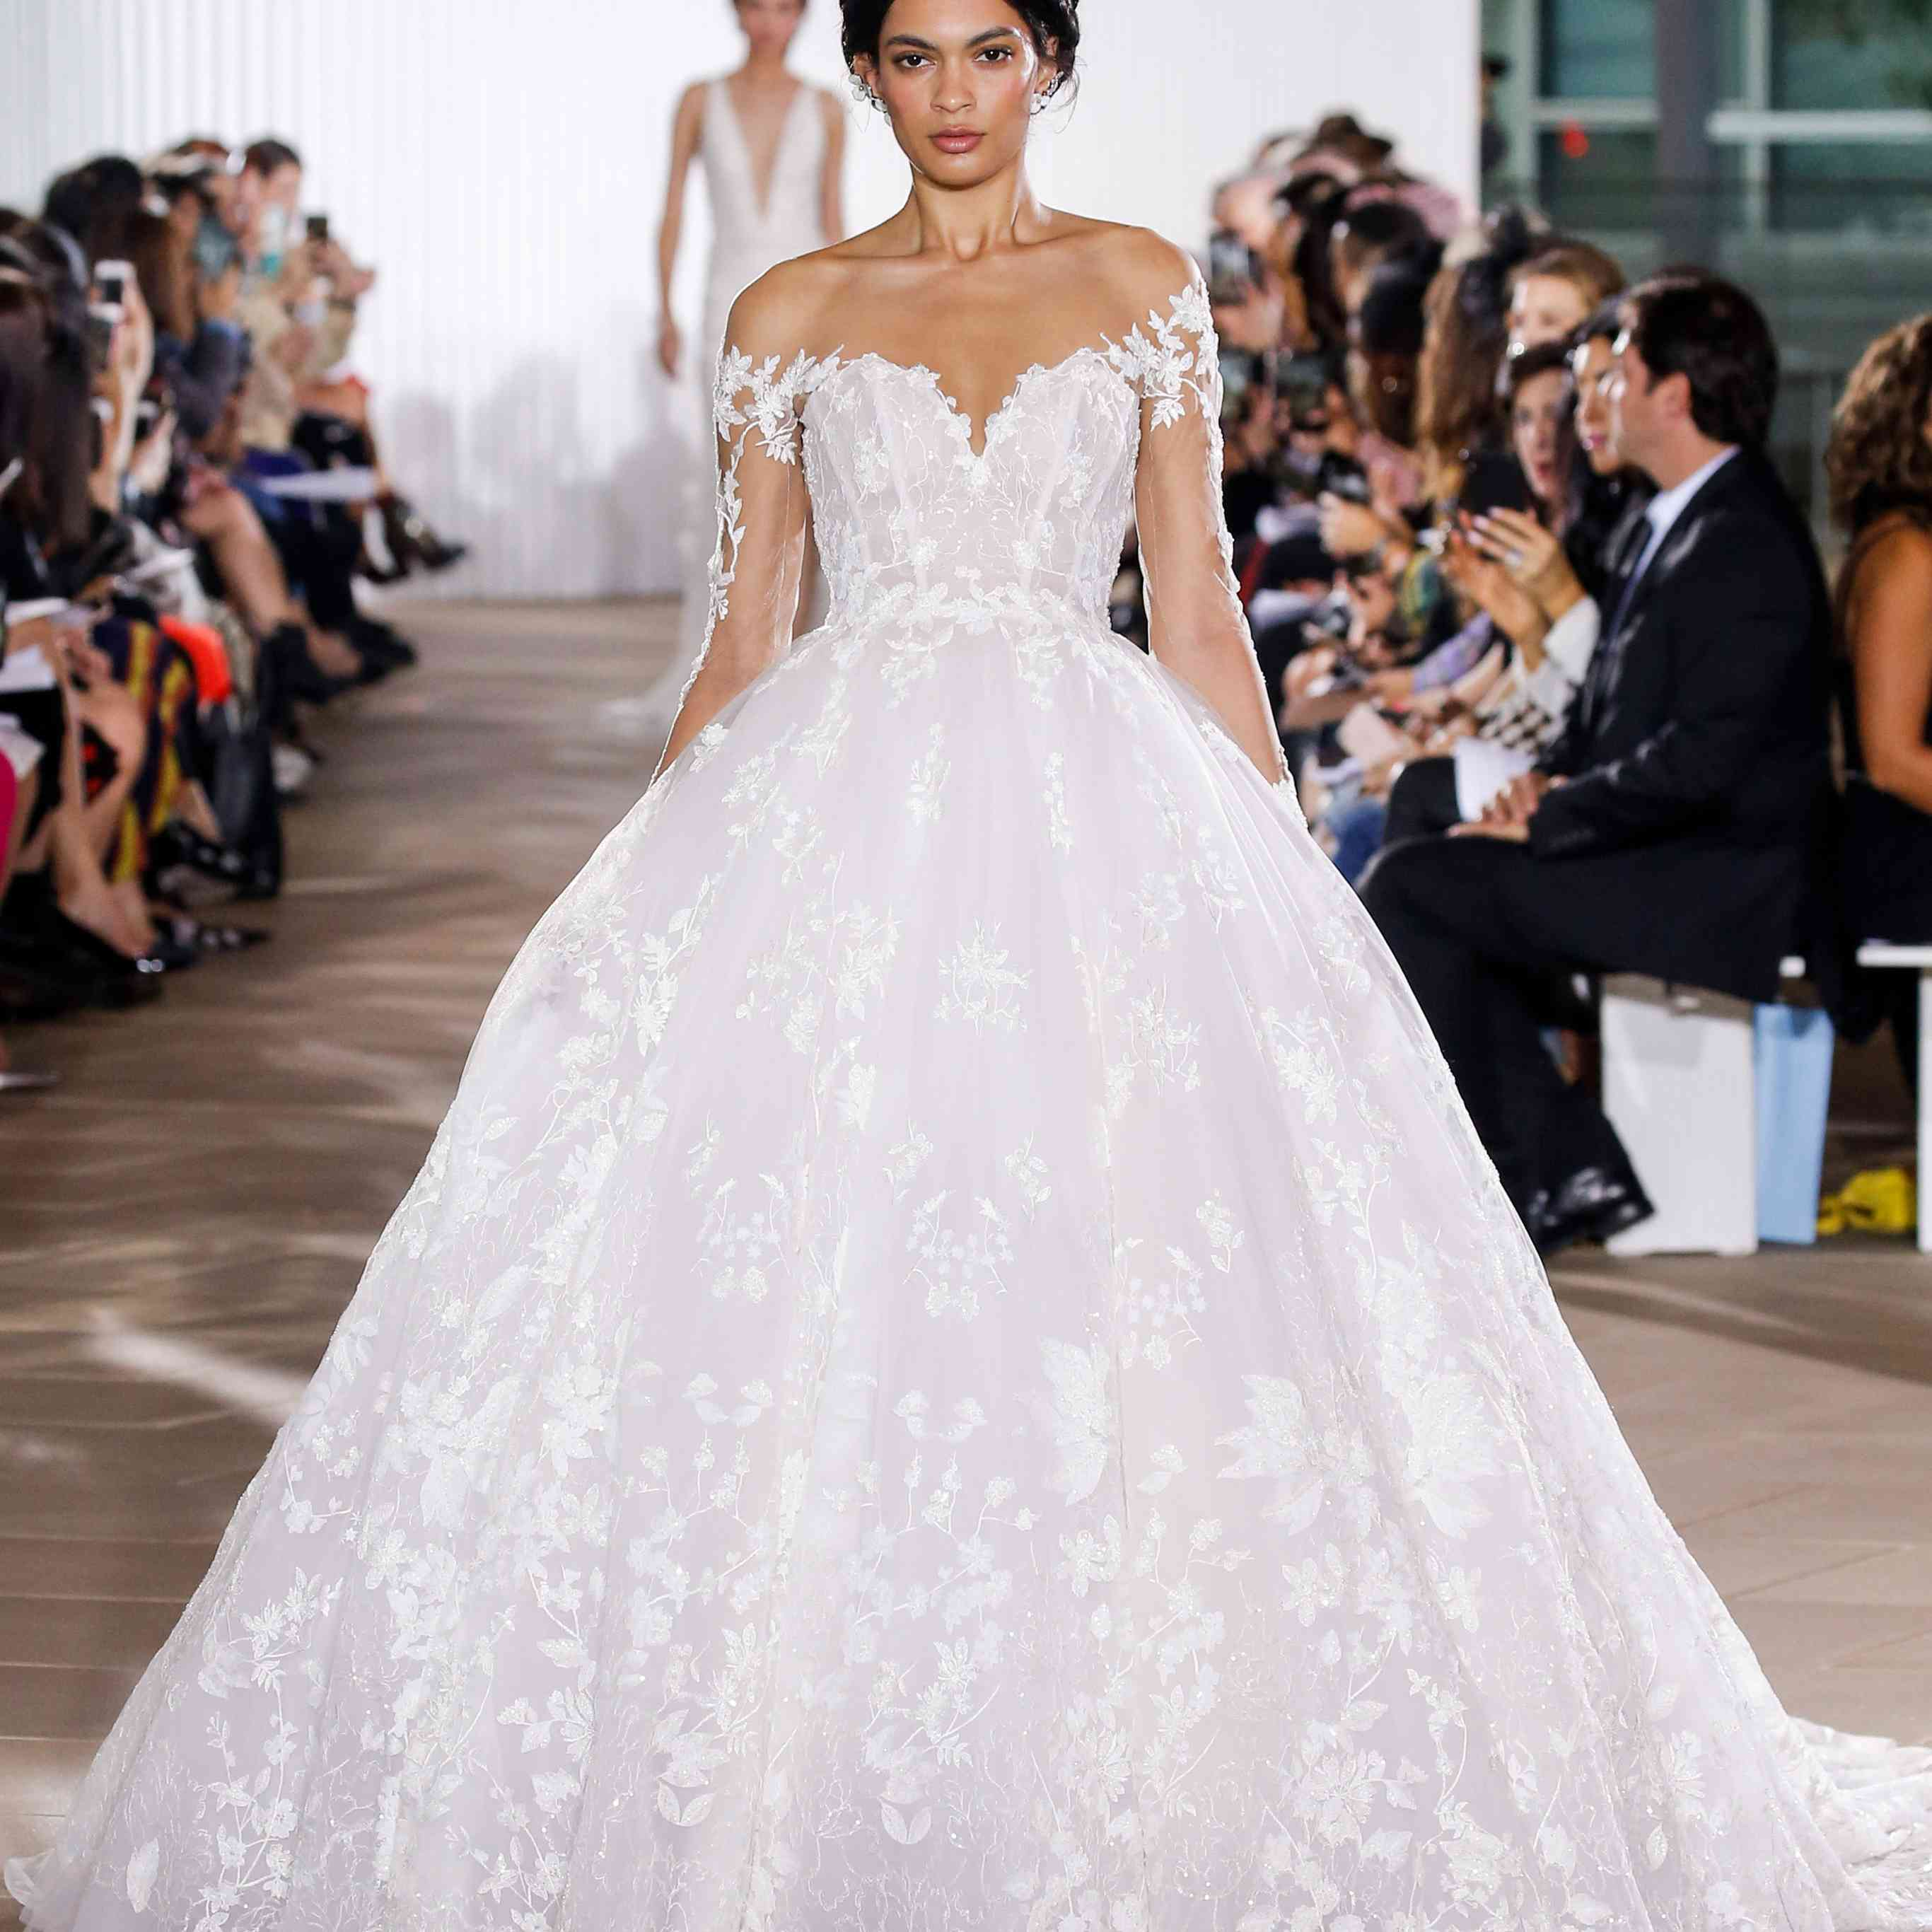 Di Santo Wedding Gowns: Ines Di Santo Bridal & Wedding Dress Collection Fall 2020